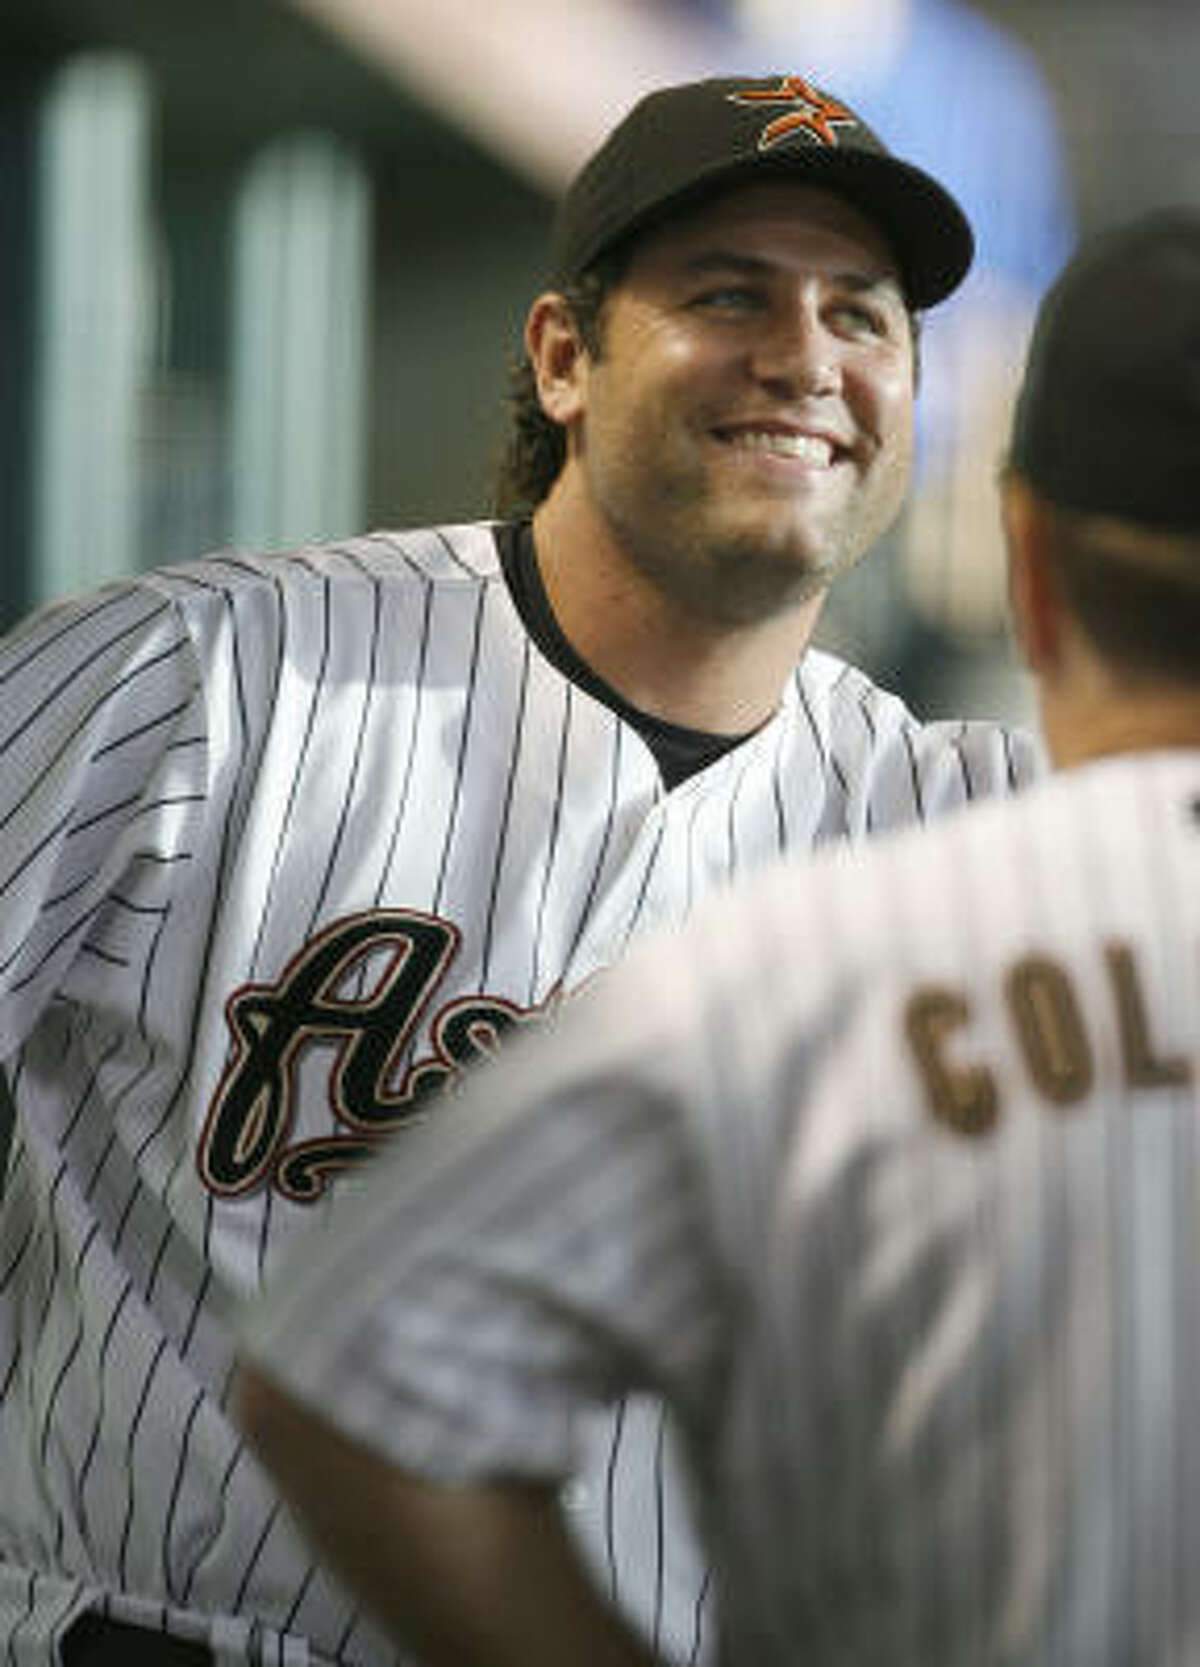 Houston's Lance Berkman walked in the ninth to load the bases for Jeff Blum's RBI walk-off single.